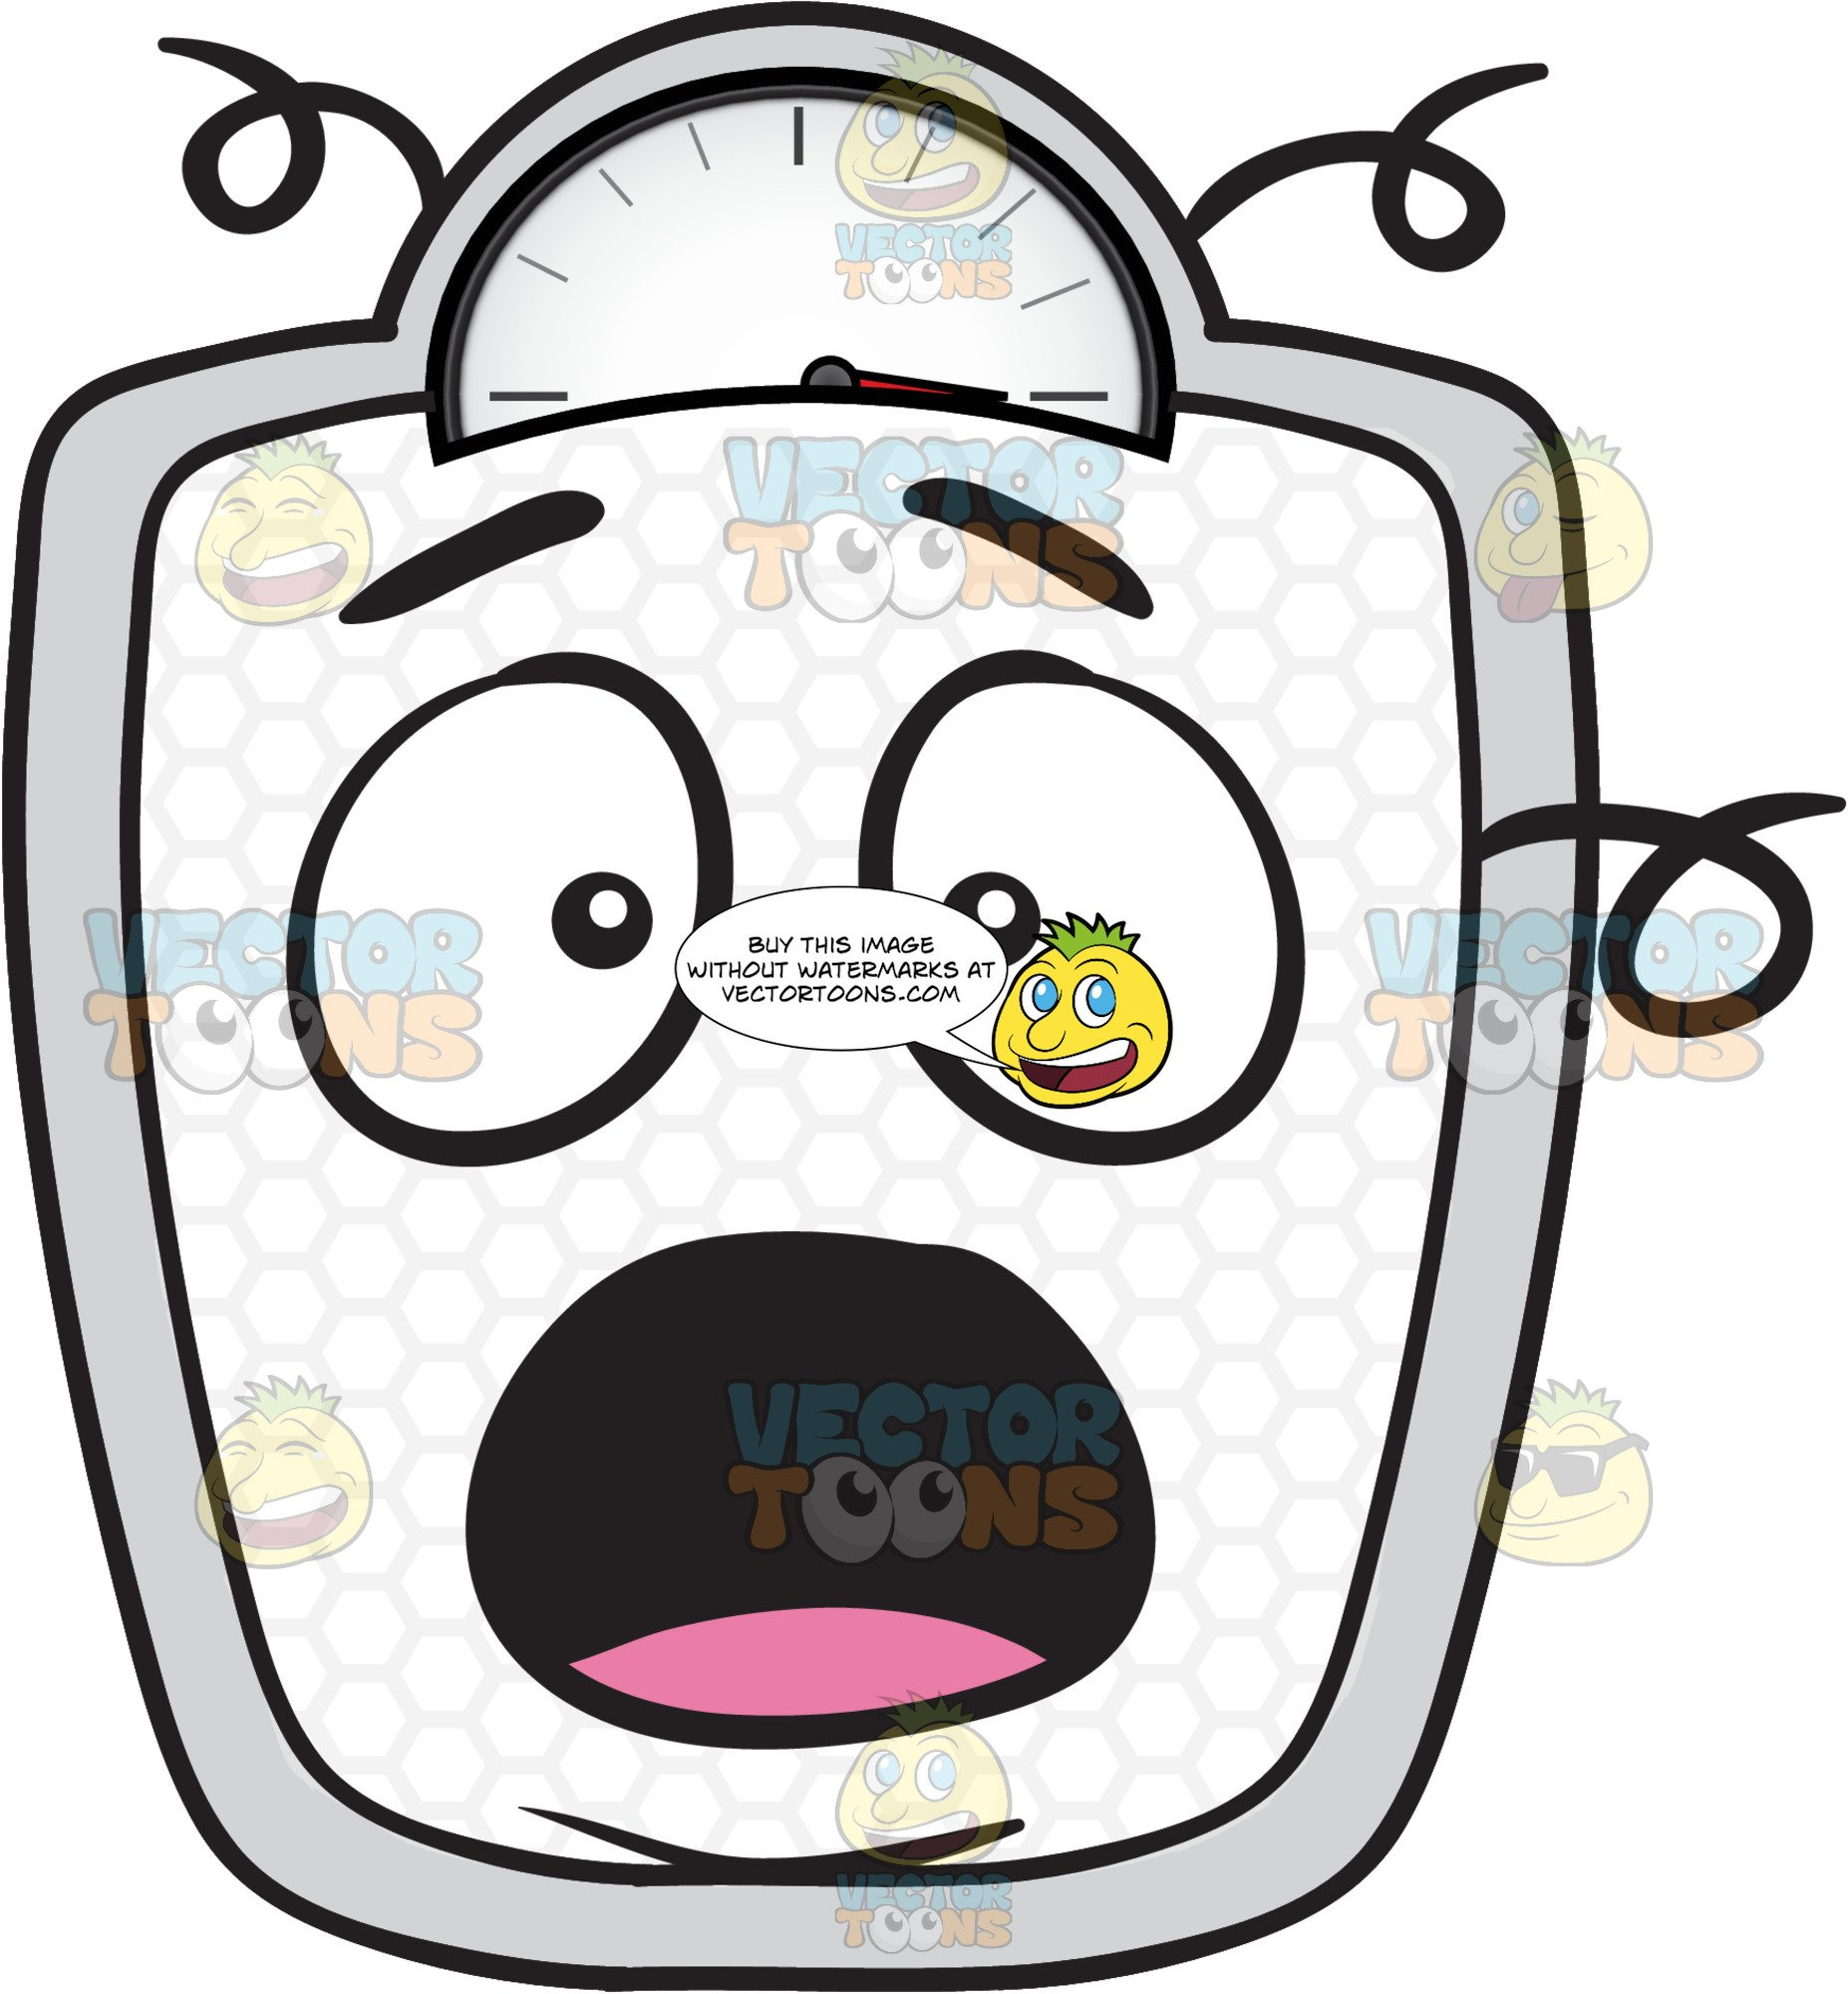 Weighing device clipart image royalty free stock Startled Weighing Scale Emoji image royalty free stock